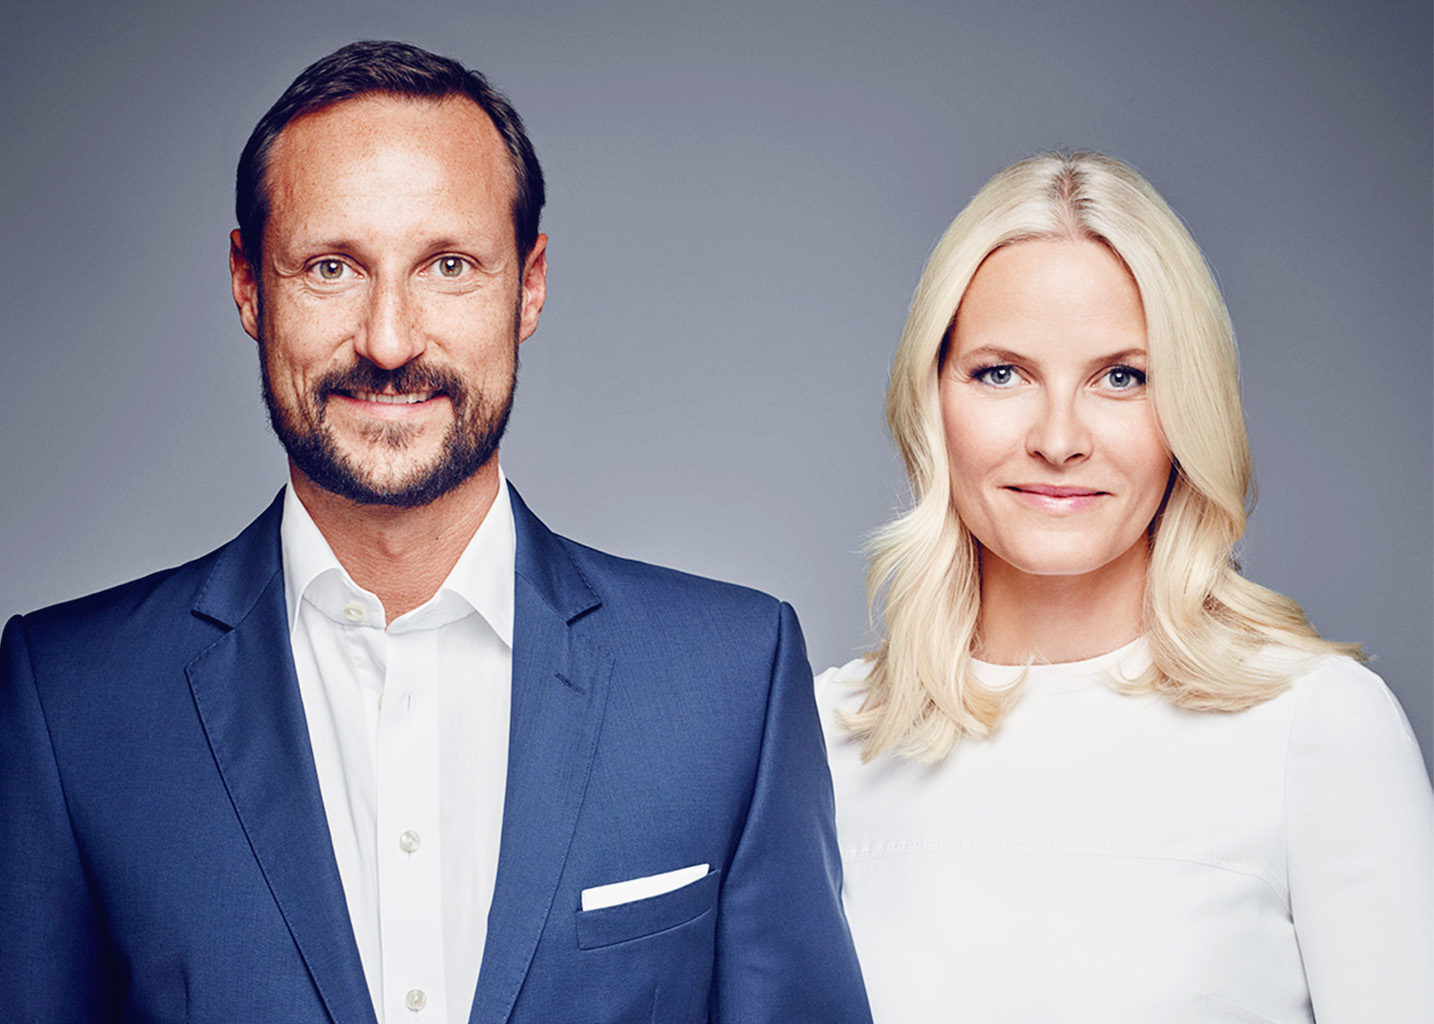 The Crown Prince Couple. (Courtesy Jørgen Gomnæs via The Royal Court)